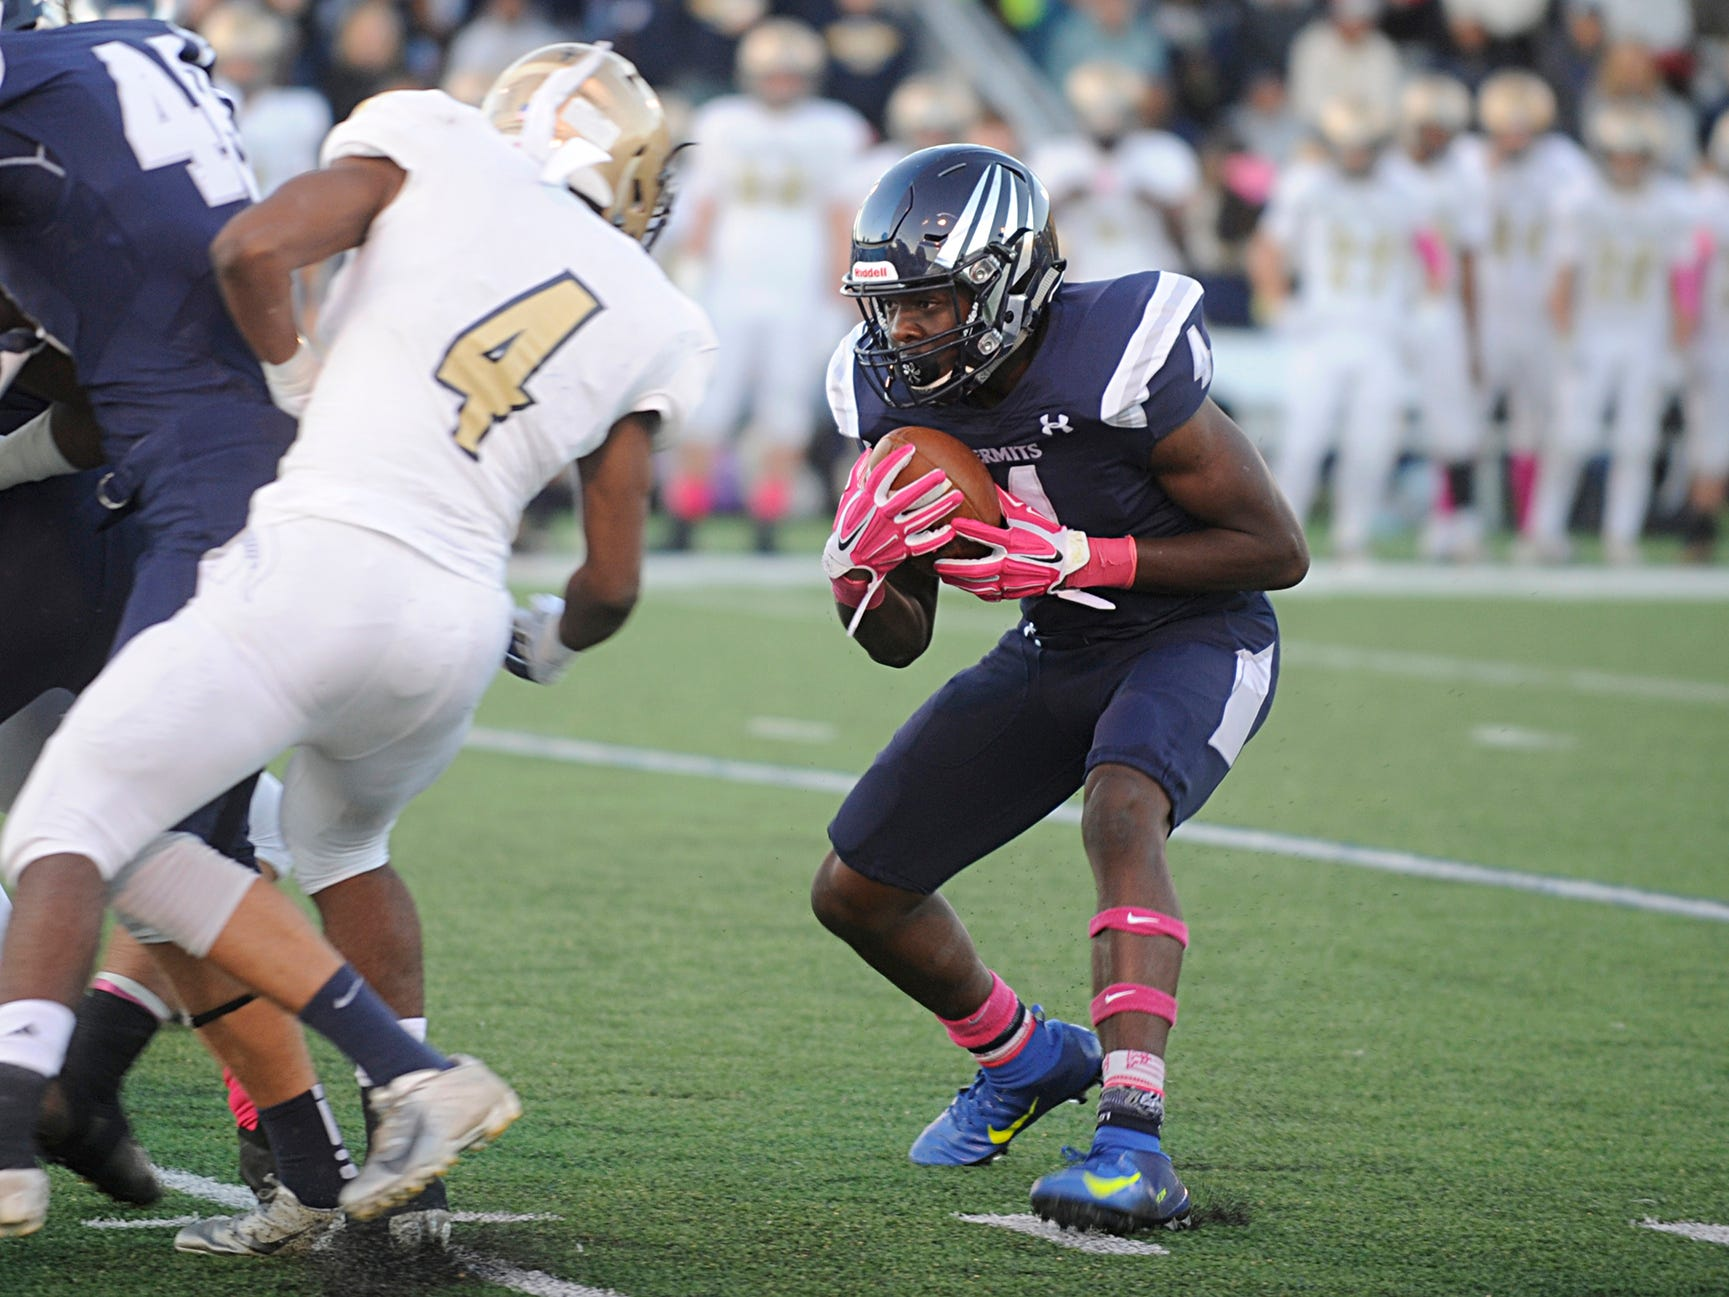 St. Augustine's Nasir Hill runs for a gain during a game against Holy Spirit. The Hermits defeated the visiting Spartans, 27-14 on Friday, October 12, 2018.